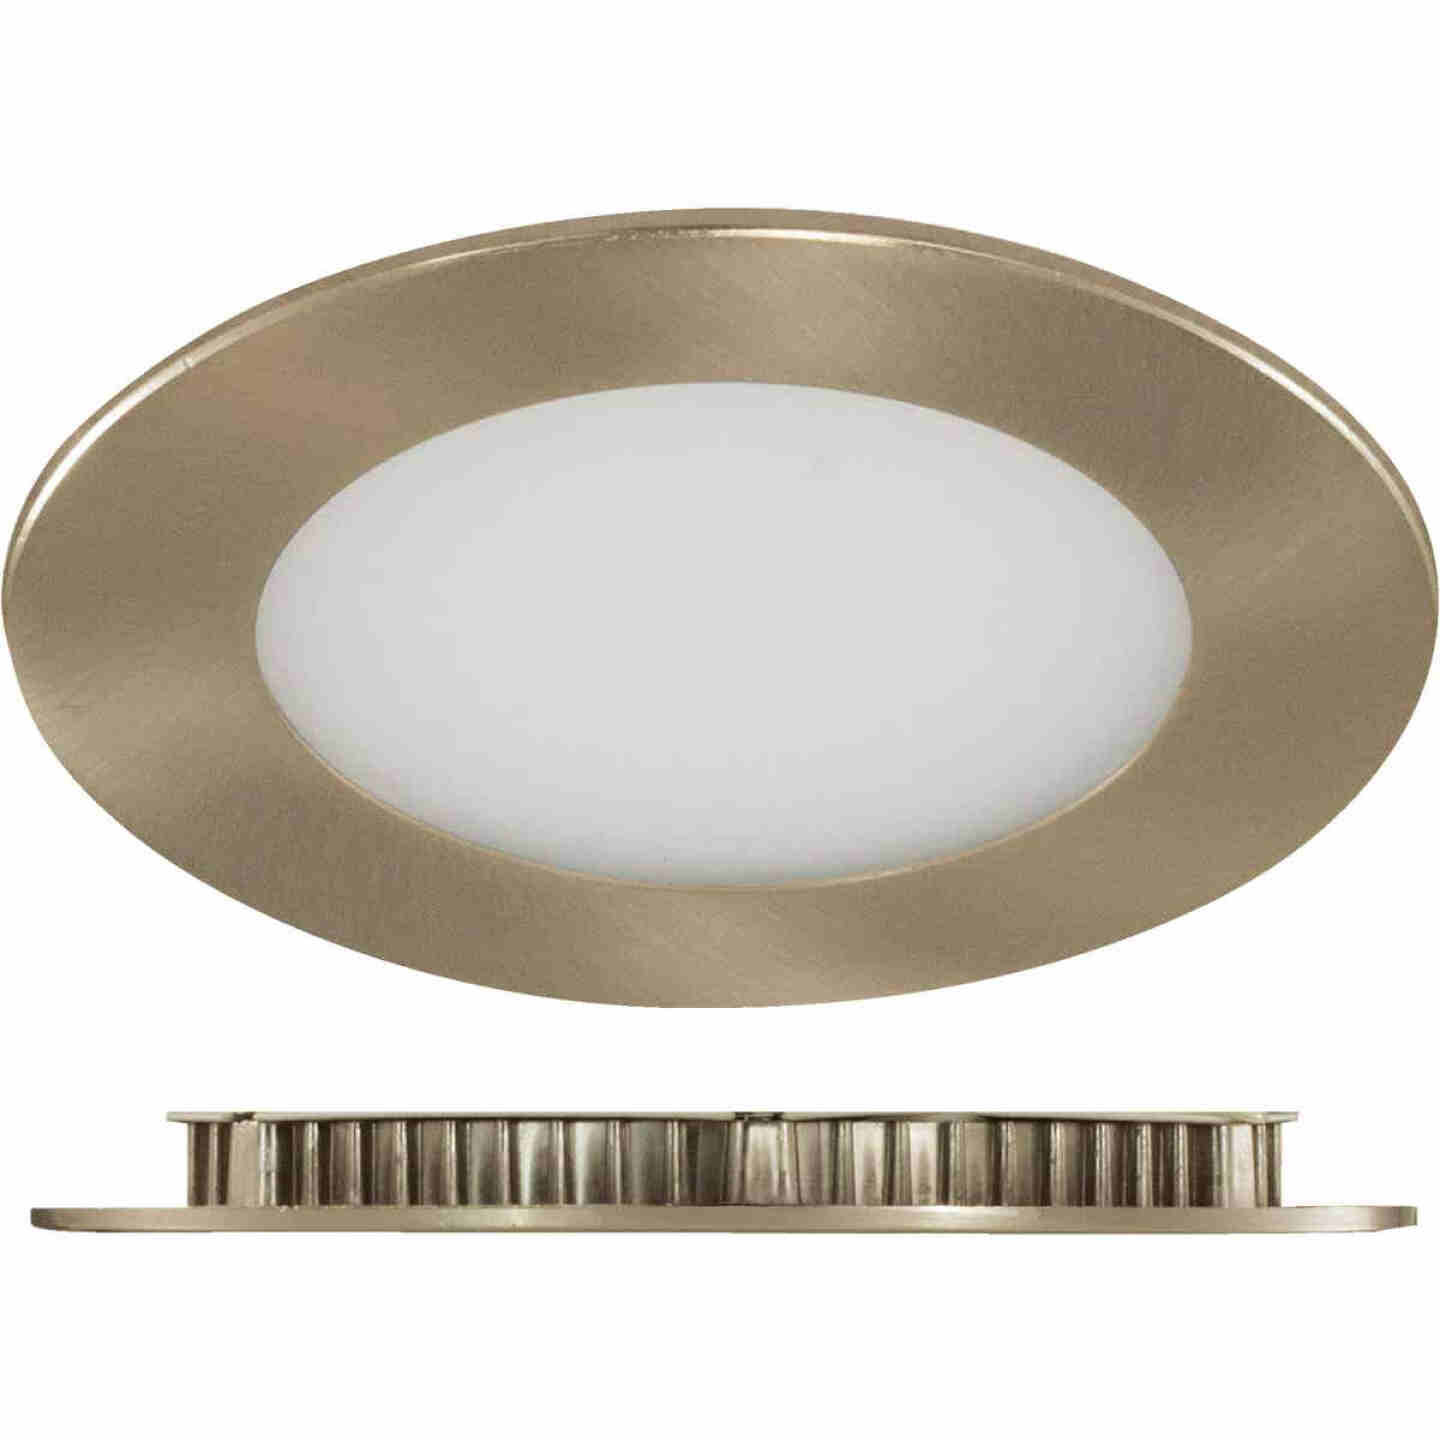 Liteline Trenz ThinLED 4 In. New Construction/Remodel IC Rated Brushed Nickel 650 Lm. 4000K Recessed Light Kit Image 1